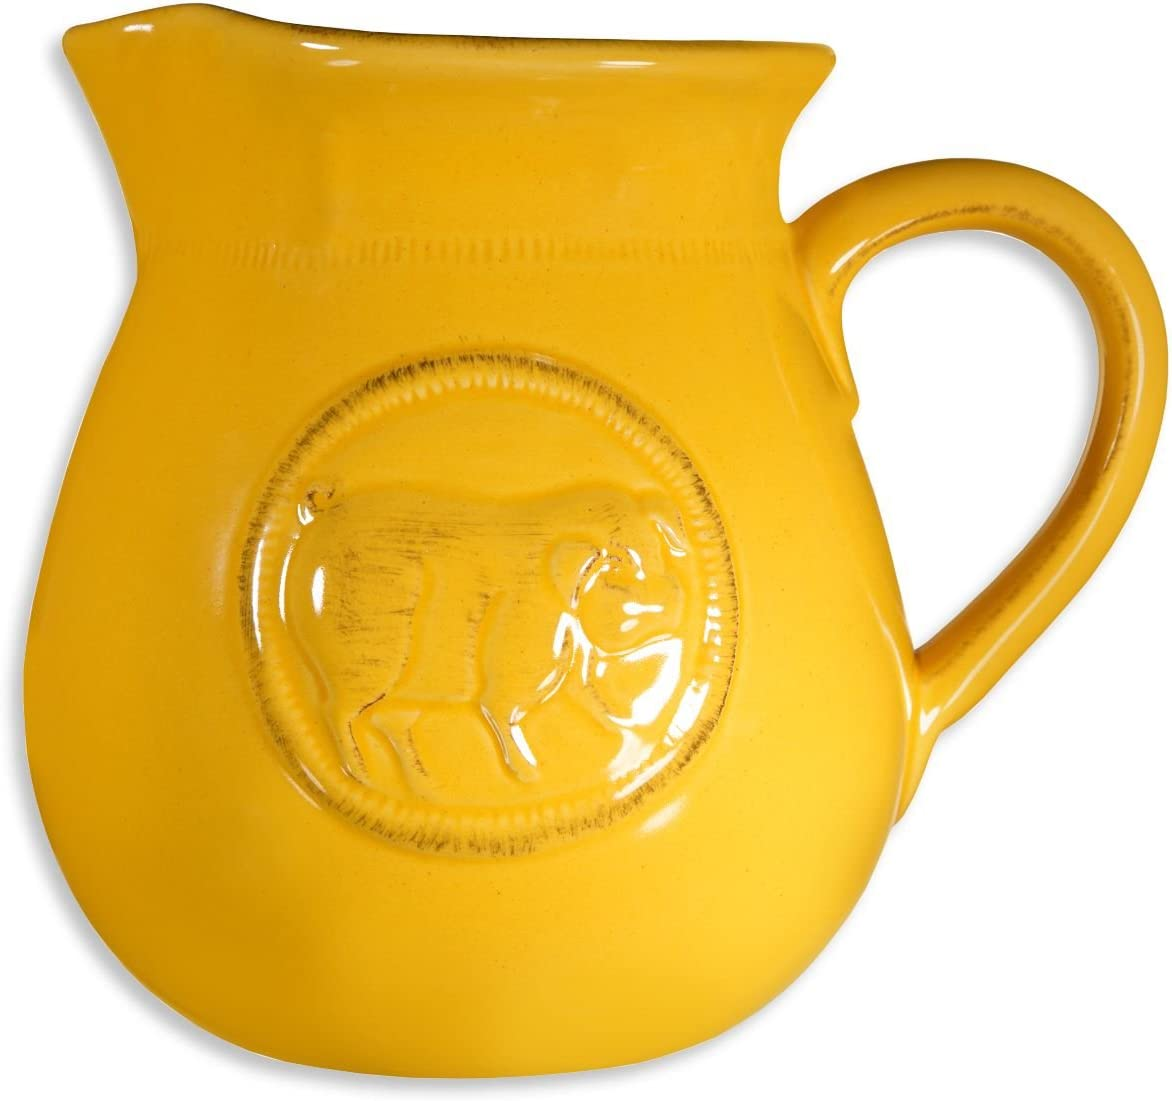 Beautiful Decorative Serving Ceramic Medallion Pig Yellow Large Water Juice Milk 3.15 Quart Pitcher Beverage Dispenser Jar Jug Cooler Vase - By Home Essentials & Beyond (Large, Yellow-Medallion Pig)